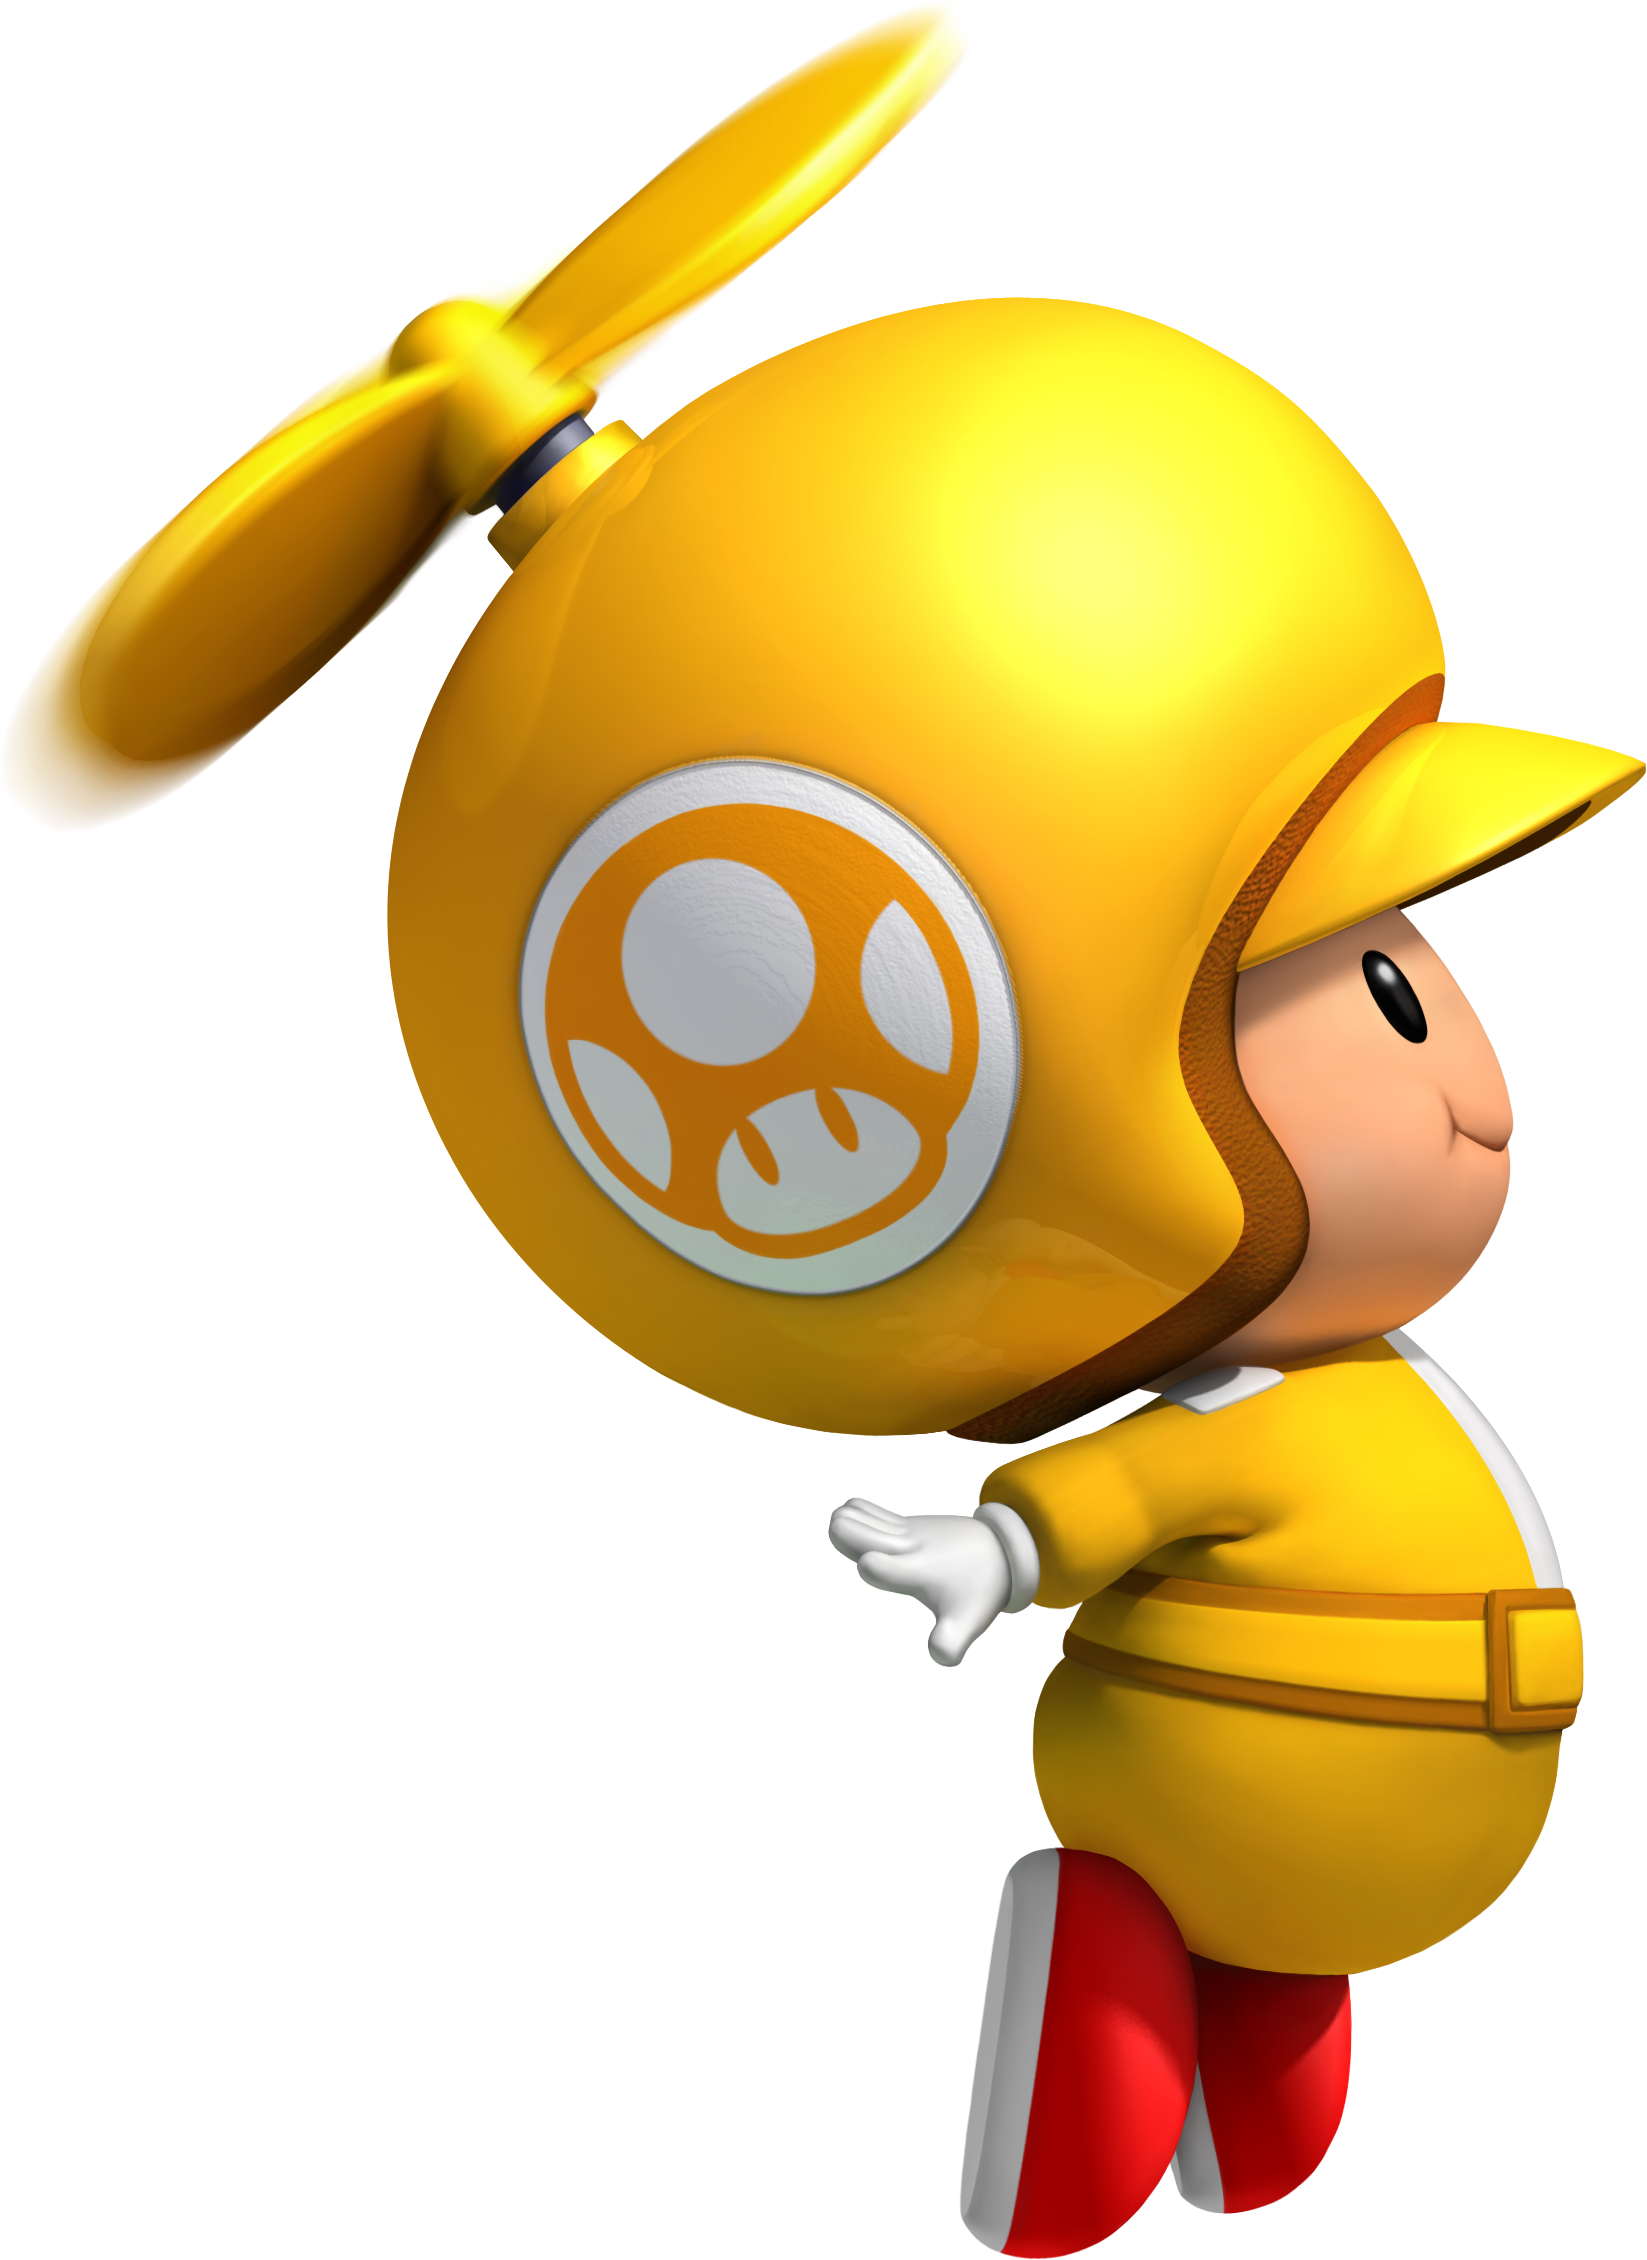 Toad transparent yellow. Image propeller png the